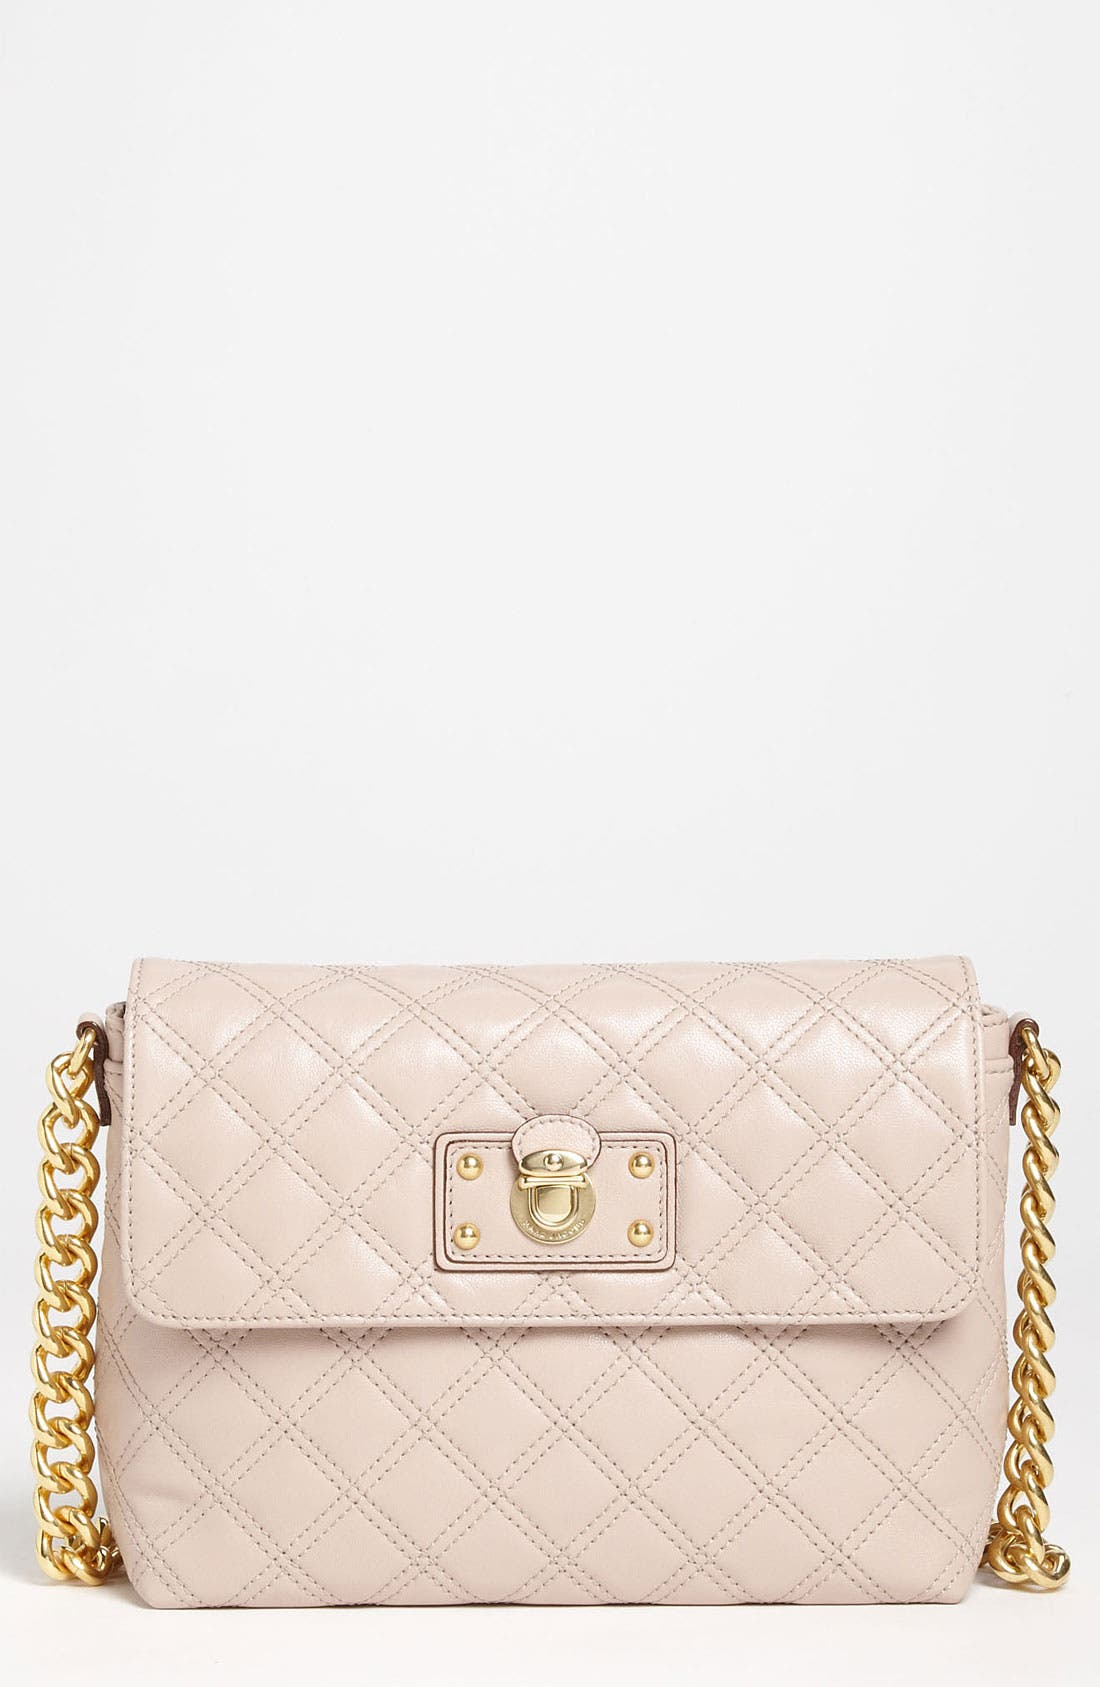 Alternate Image 1 Selected - MARC JACOBS 'Large Quilting Single' Leather Shoulder Bag